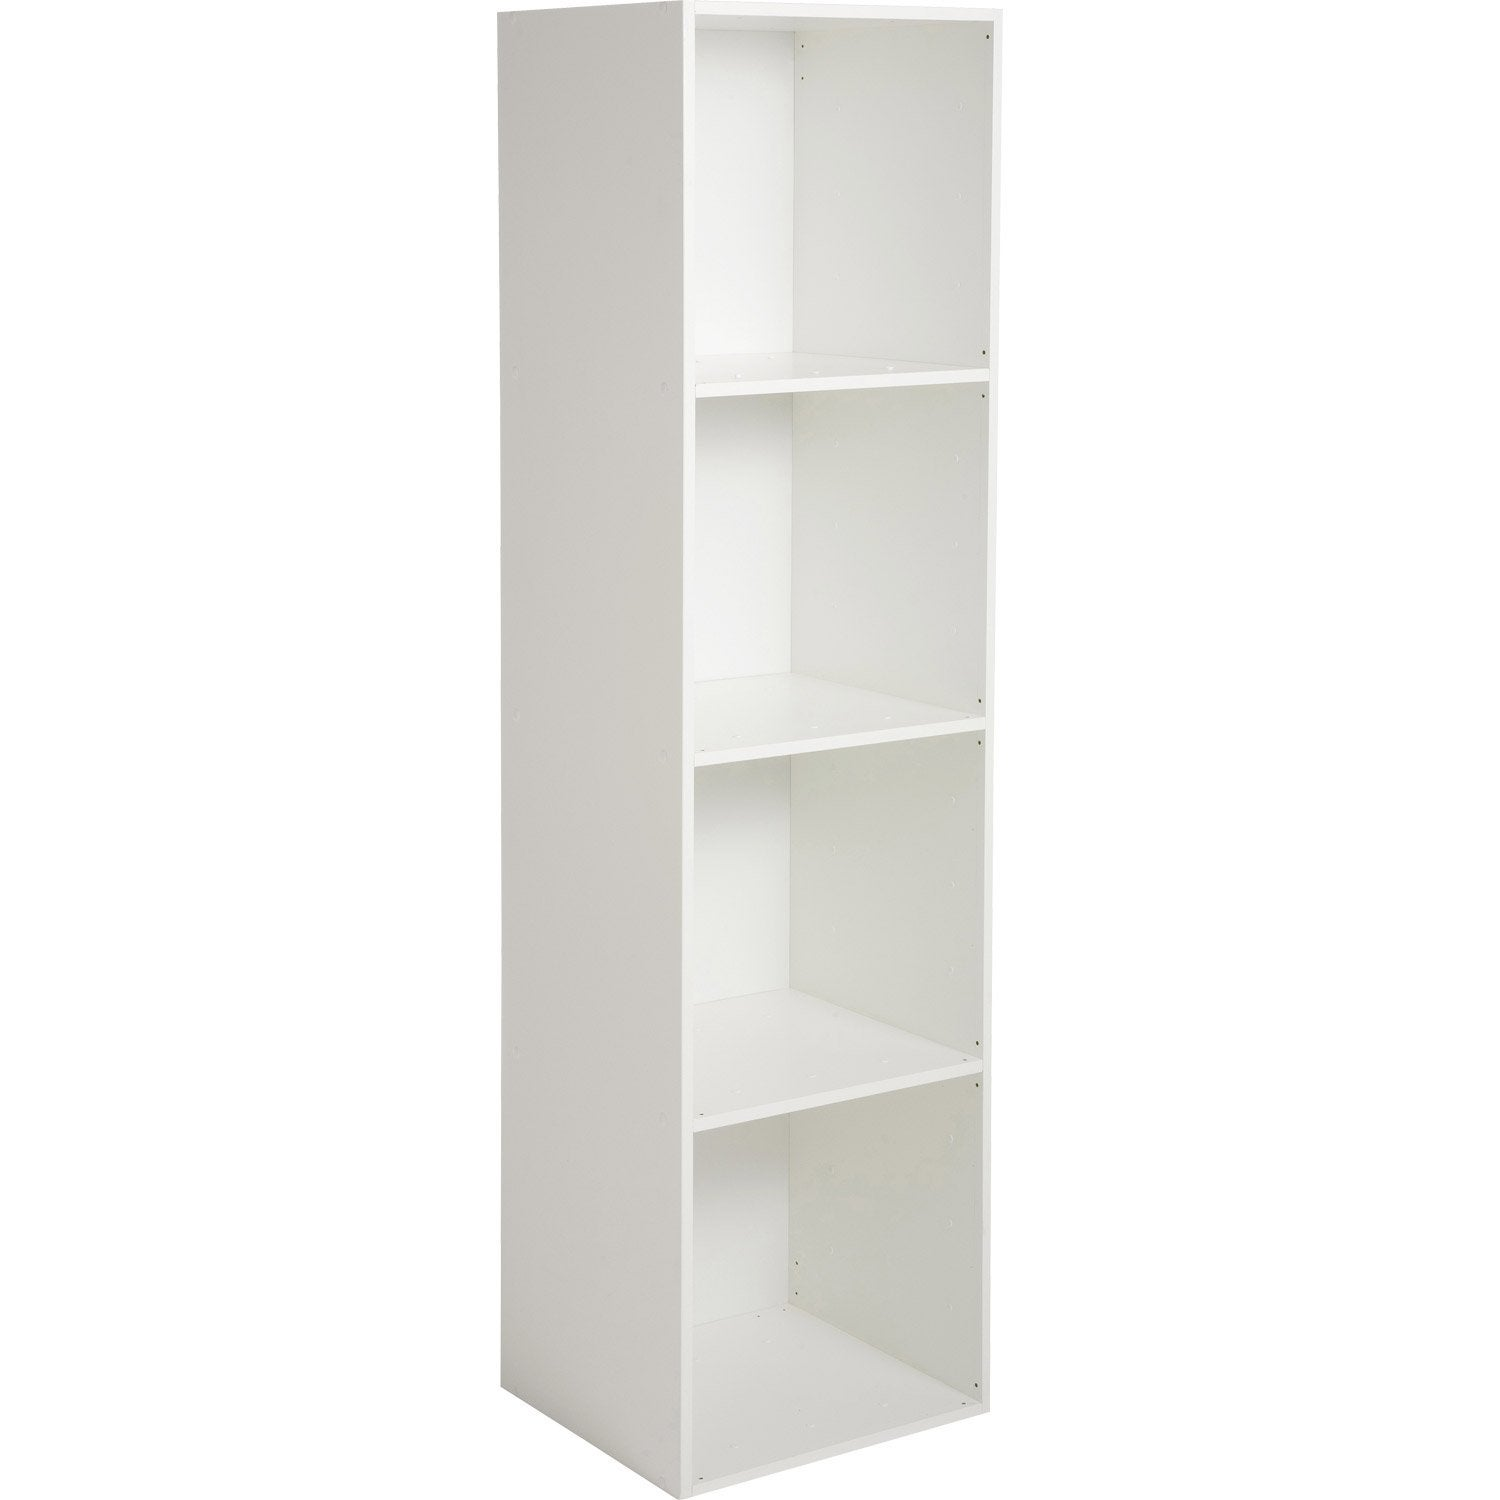 Etag re 4 cases multikaz blanc x x - Etagere modulable leroy merlin ...